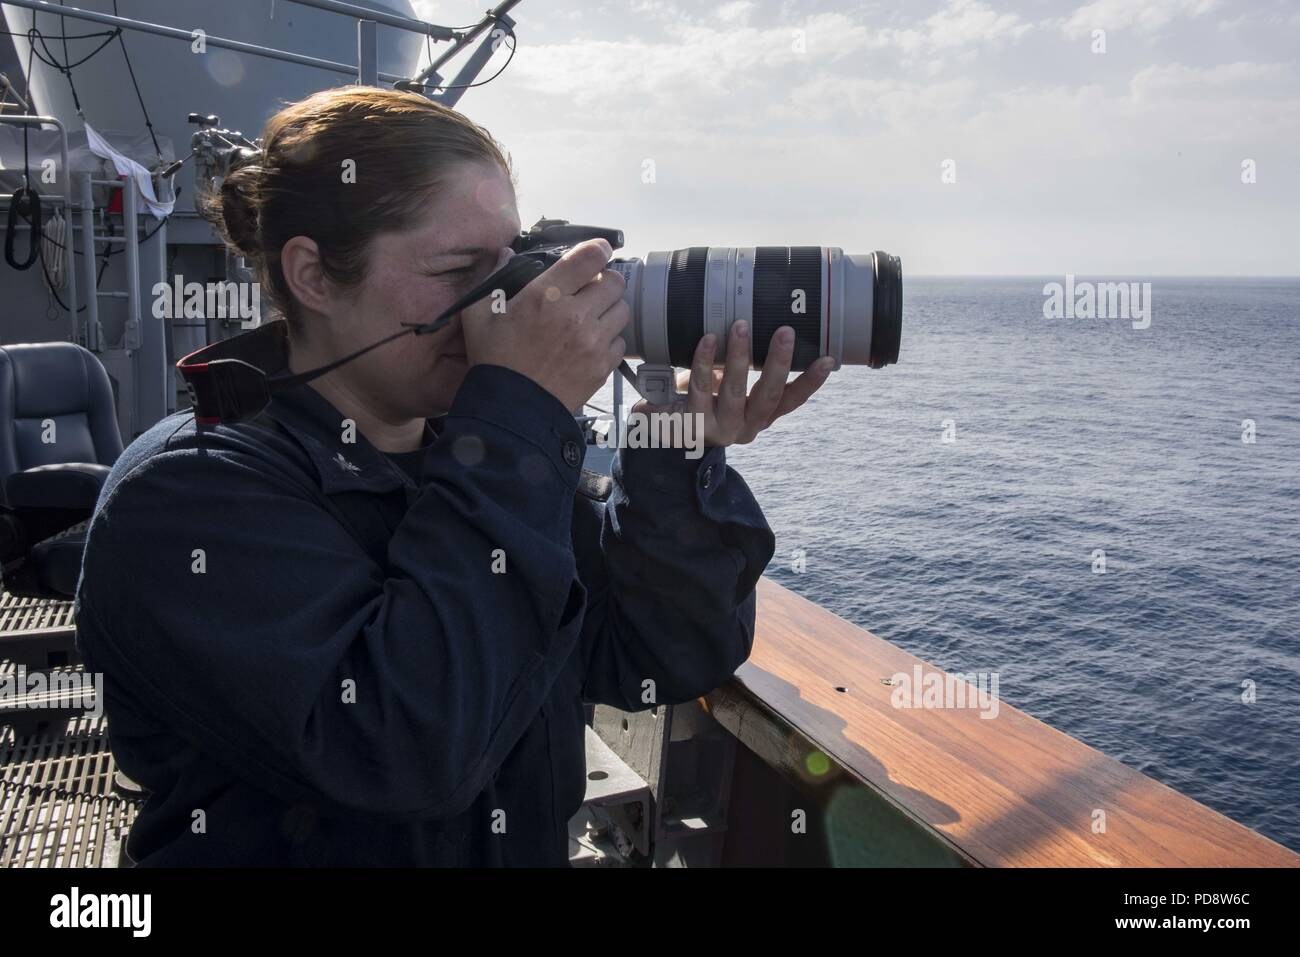 Intelligence Gathering High Resolution Stock Photography and Images - Alamy